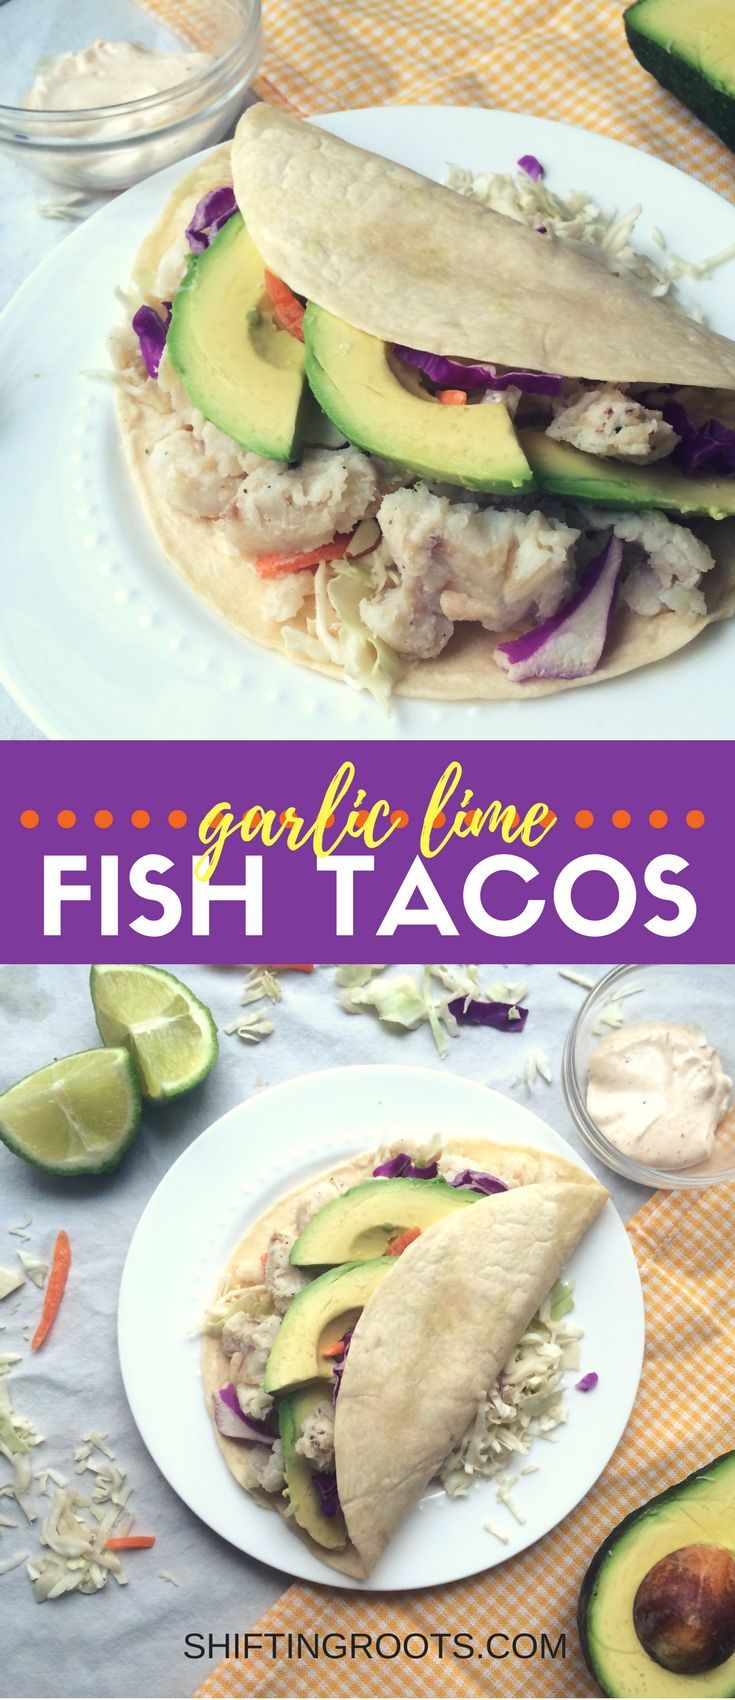 You'll want to make every night Mexican night with these easy fish tacos with cabbage slaw. You'll love the garlic lime sauce that gives it an extra kick. Works well with any type of white fish, like cod or halibut. via @shifting_roots